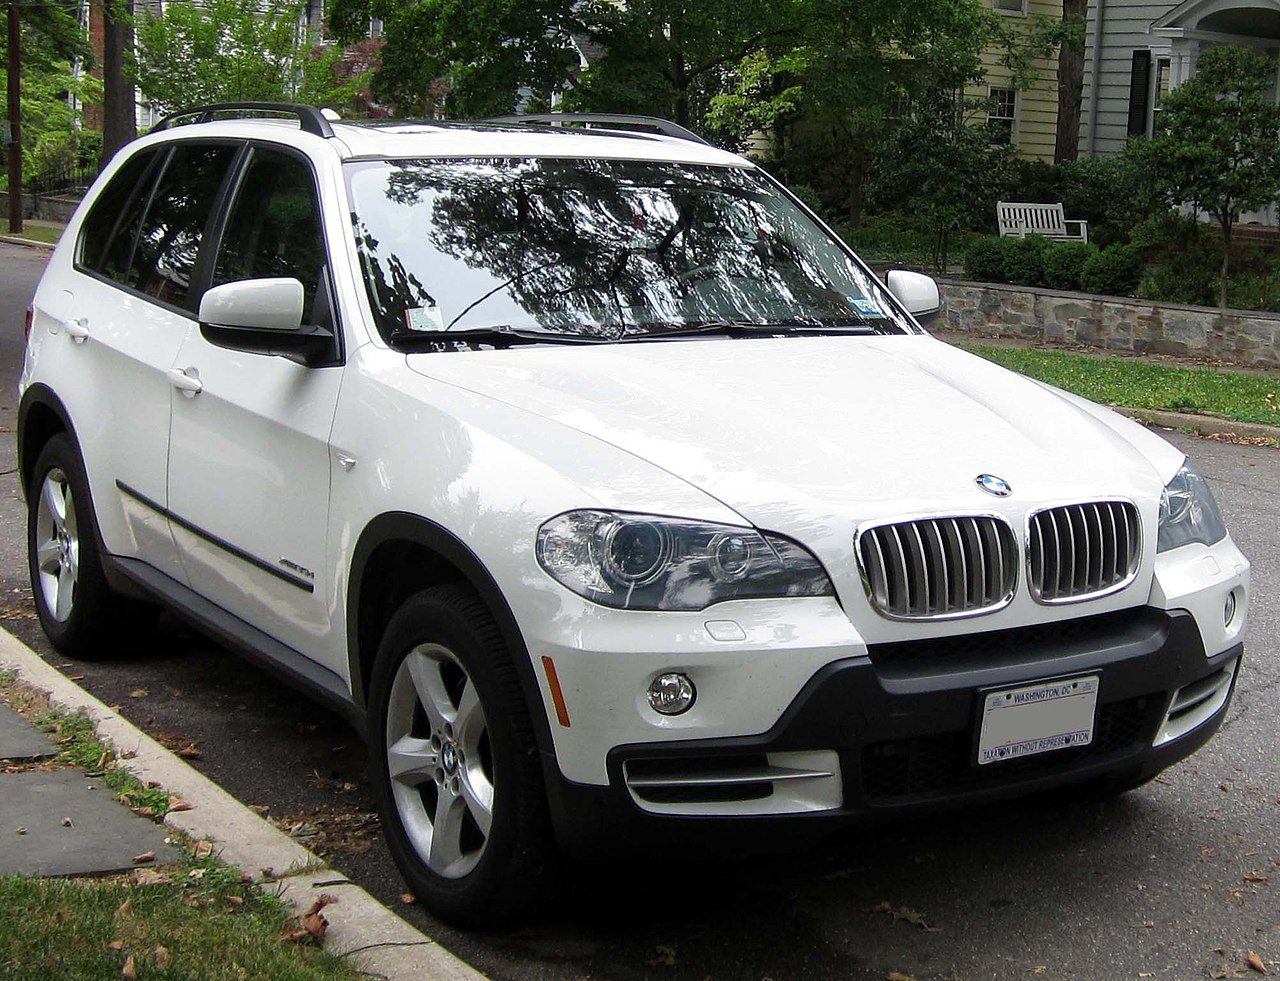 file 2nd bmw x5 07 14 2012 jpg wikipedia. Black Bedroom Furniture Sets. Home Design Ideas